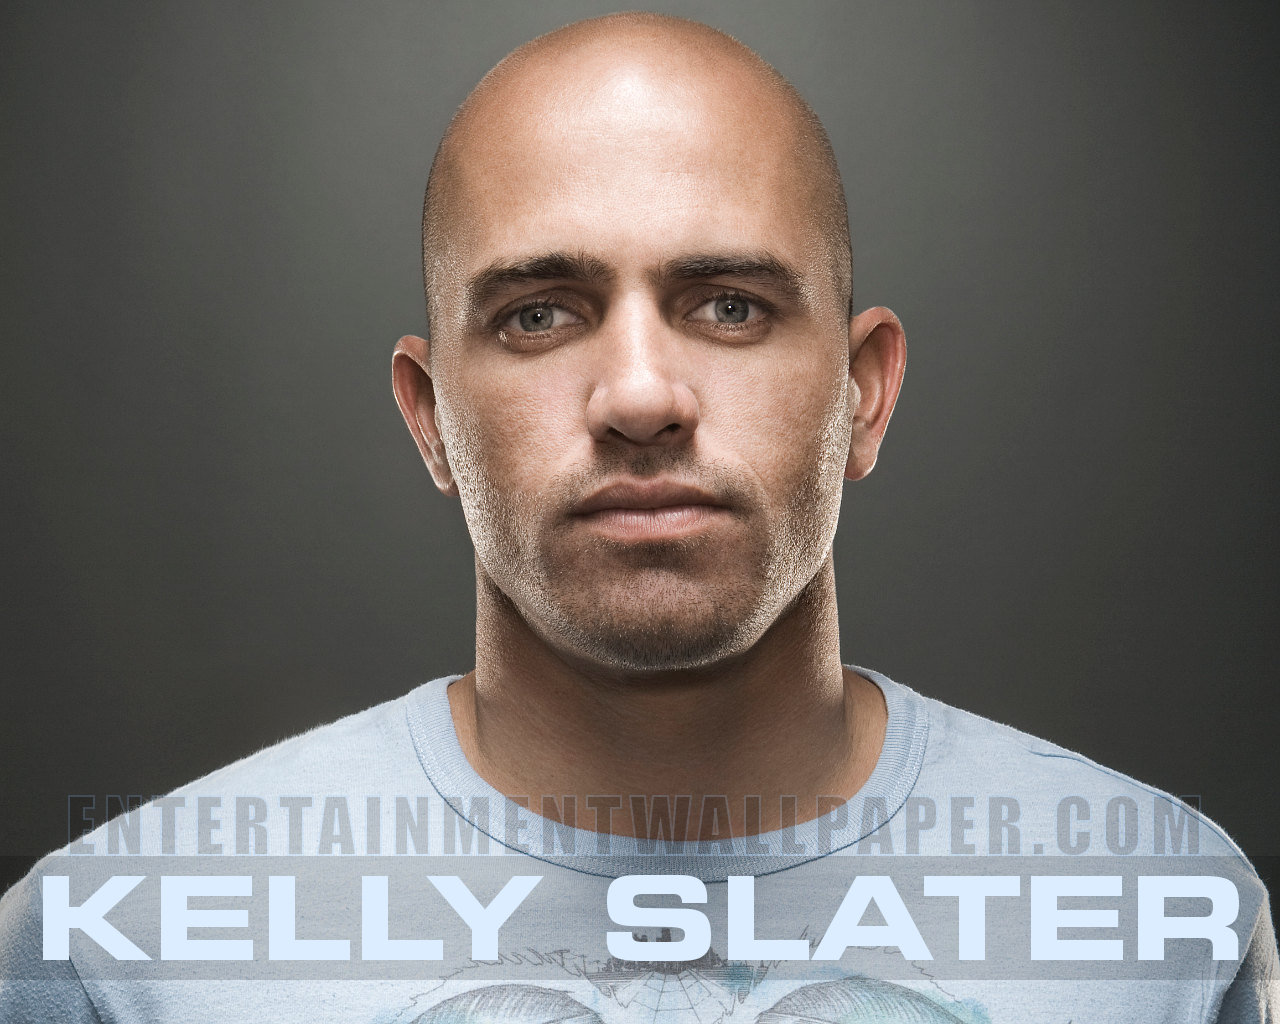 Mount-Rushmore-Kelly-Slater.jpg